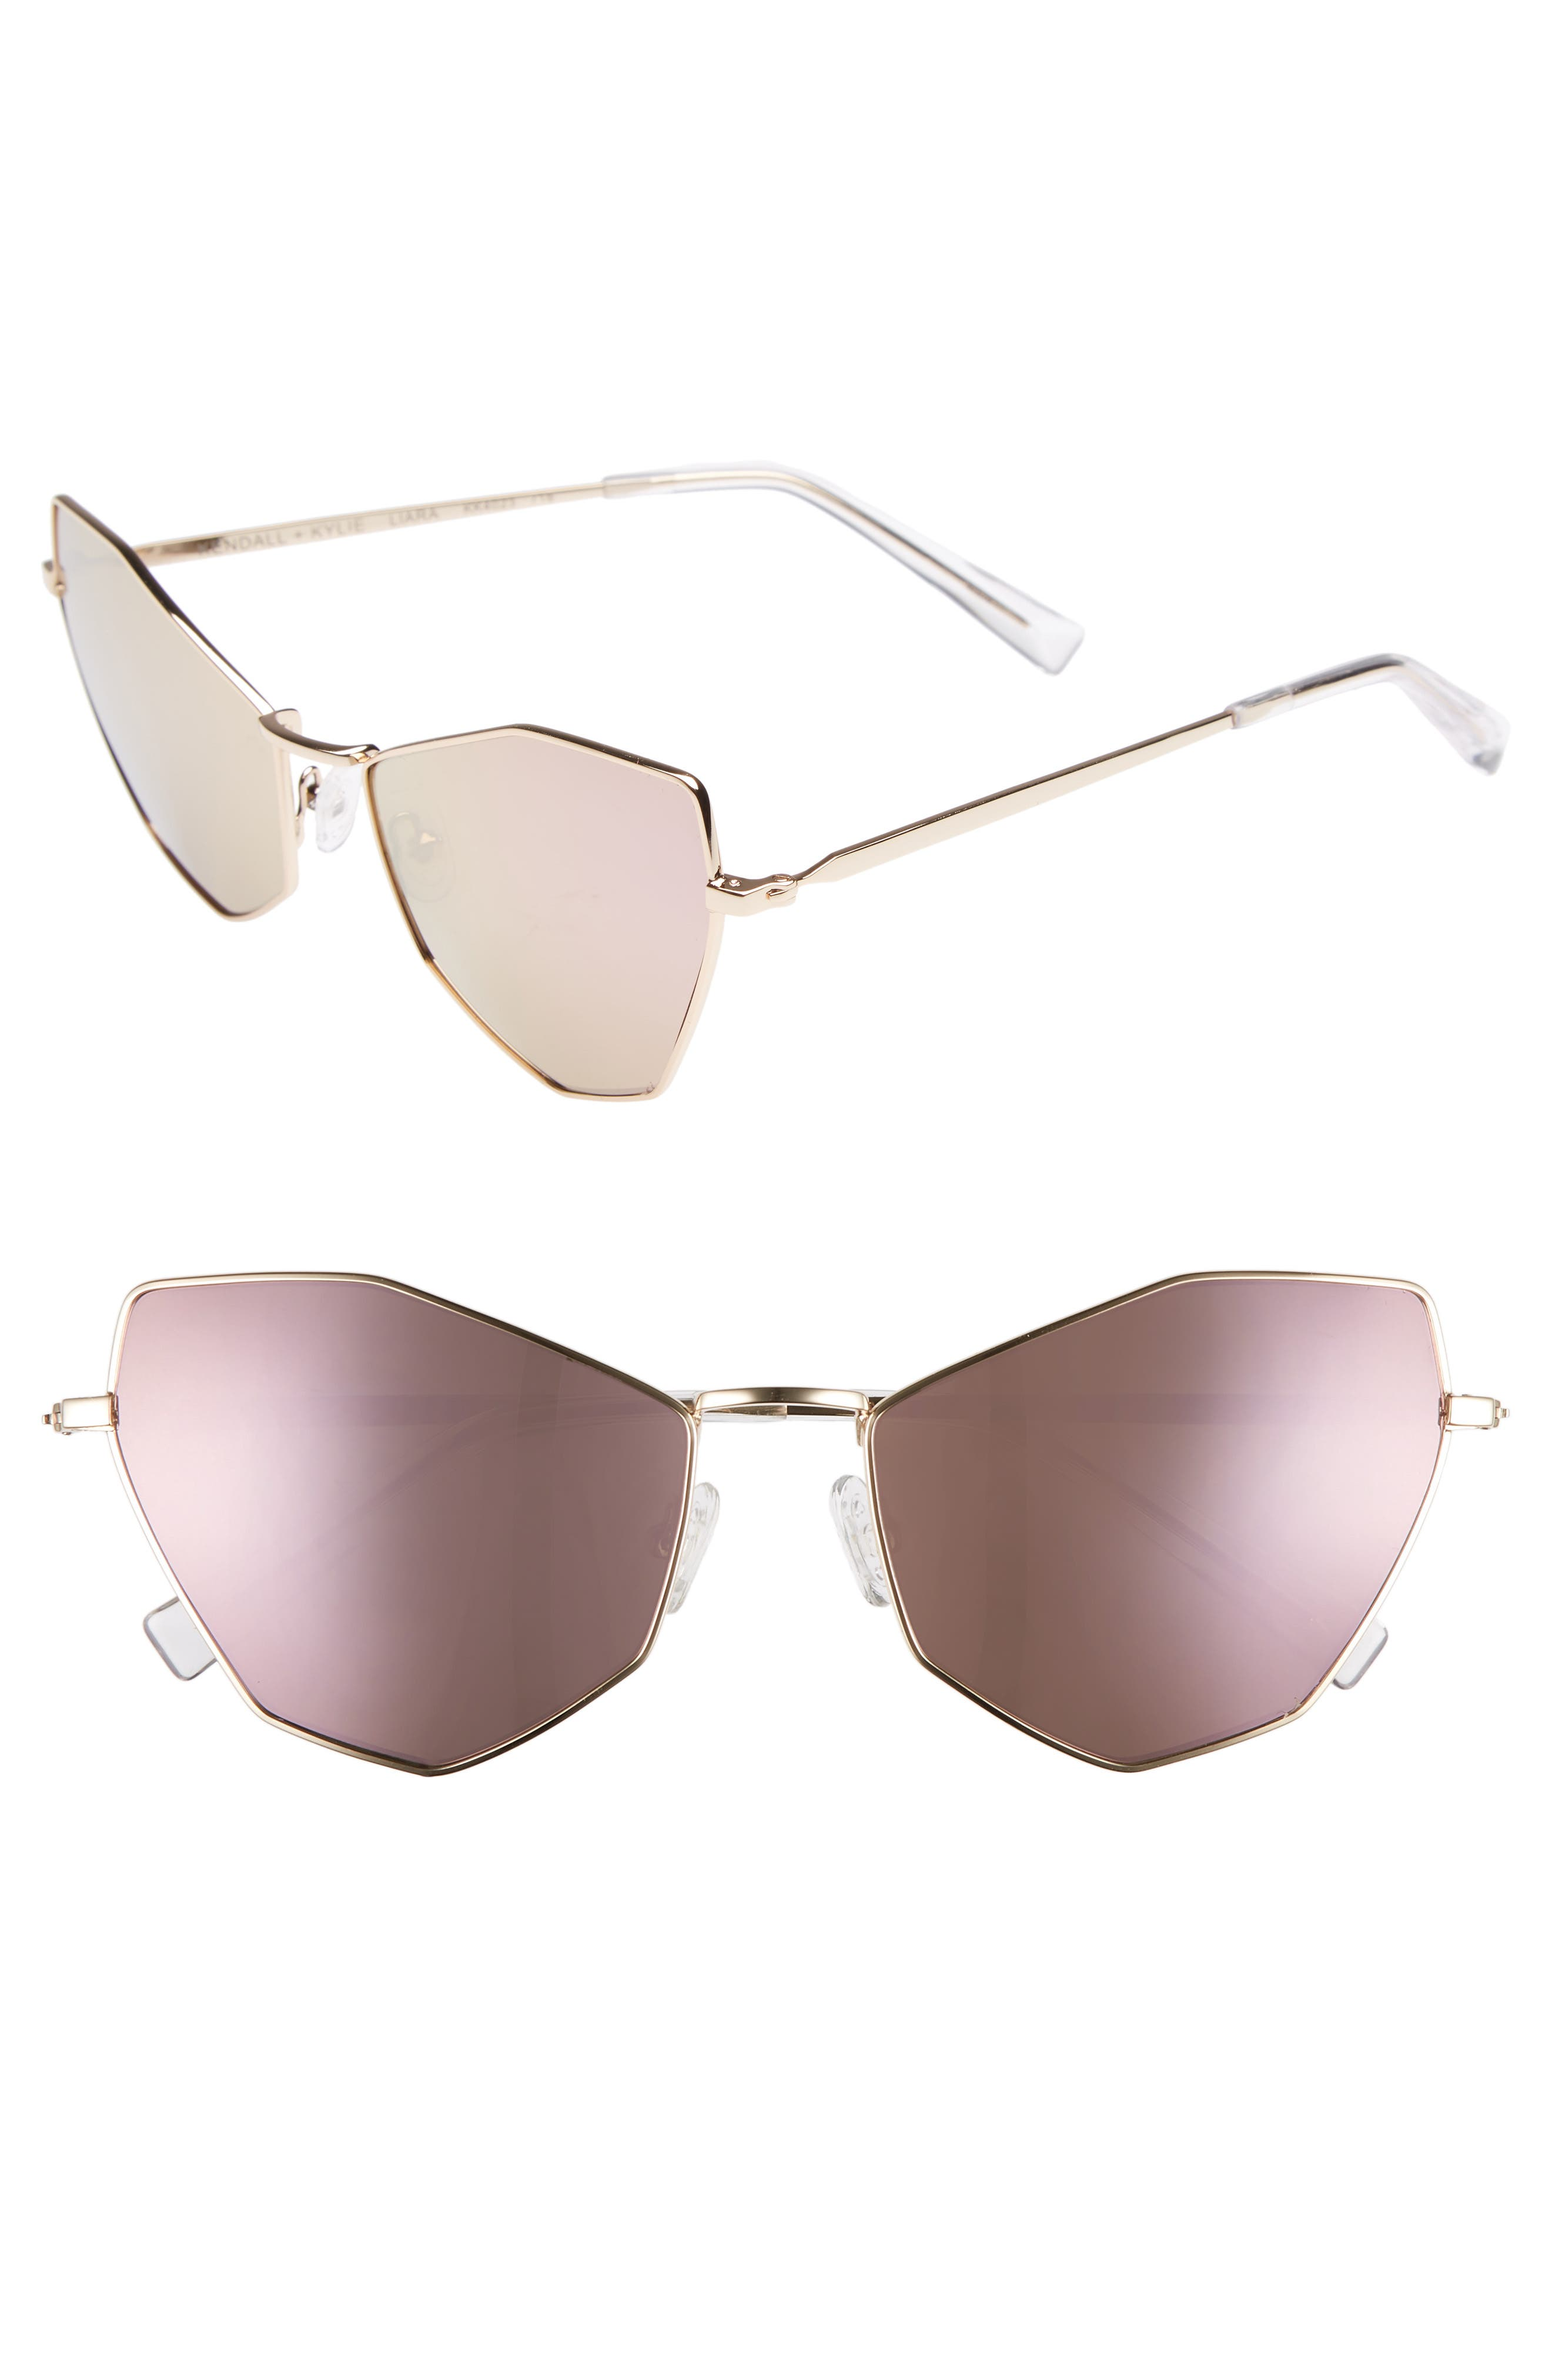 Liara 57mm Cat Eye Sunglasses,                         Main,                         color, Light Gold/ Rose Gold Flash